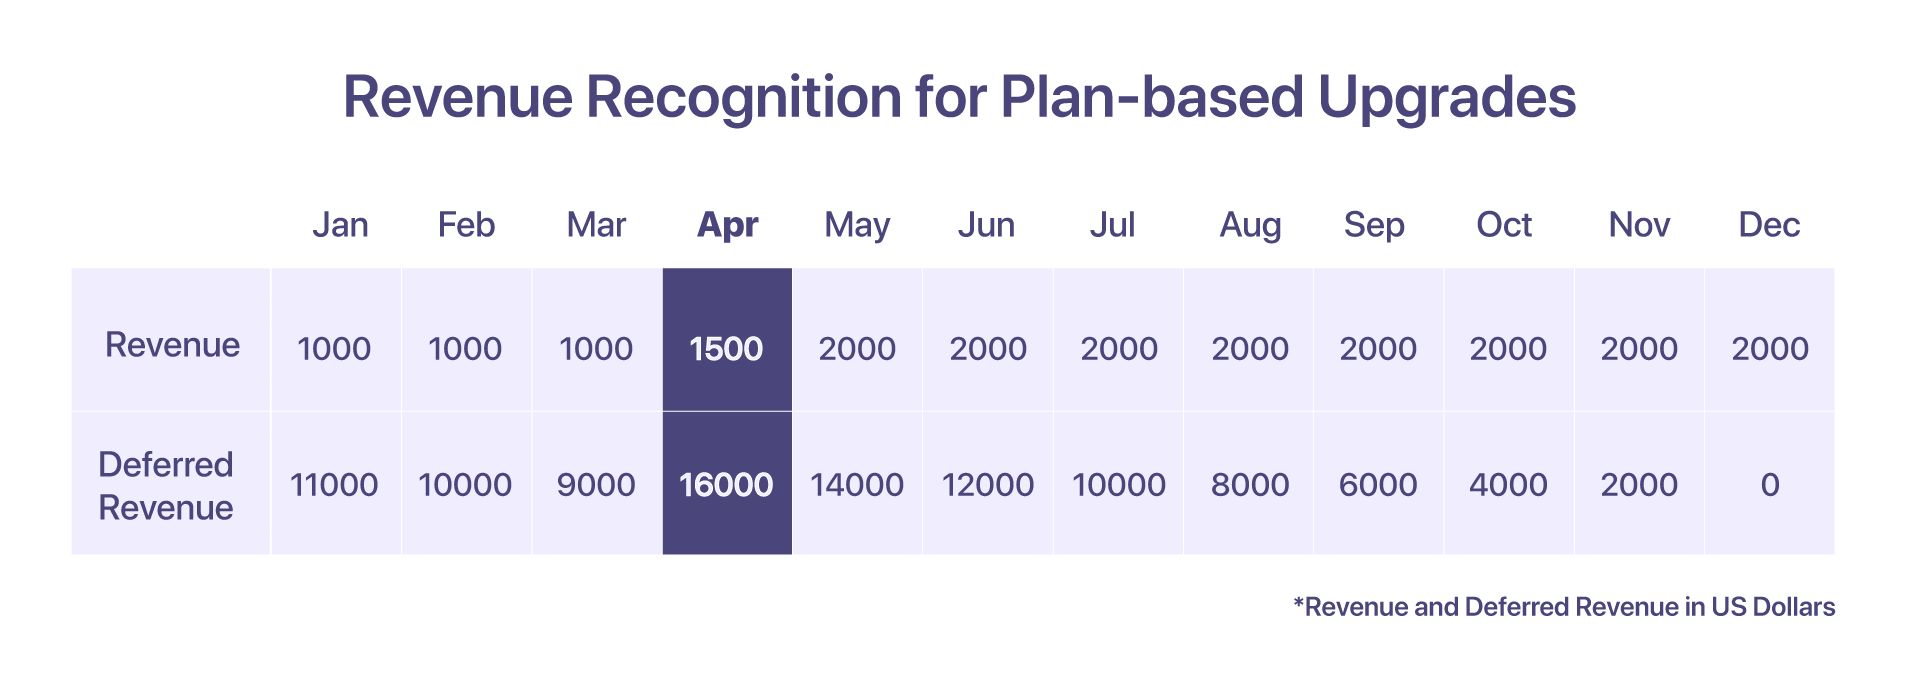 revenue recognition for plan-based upgrades